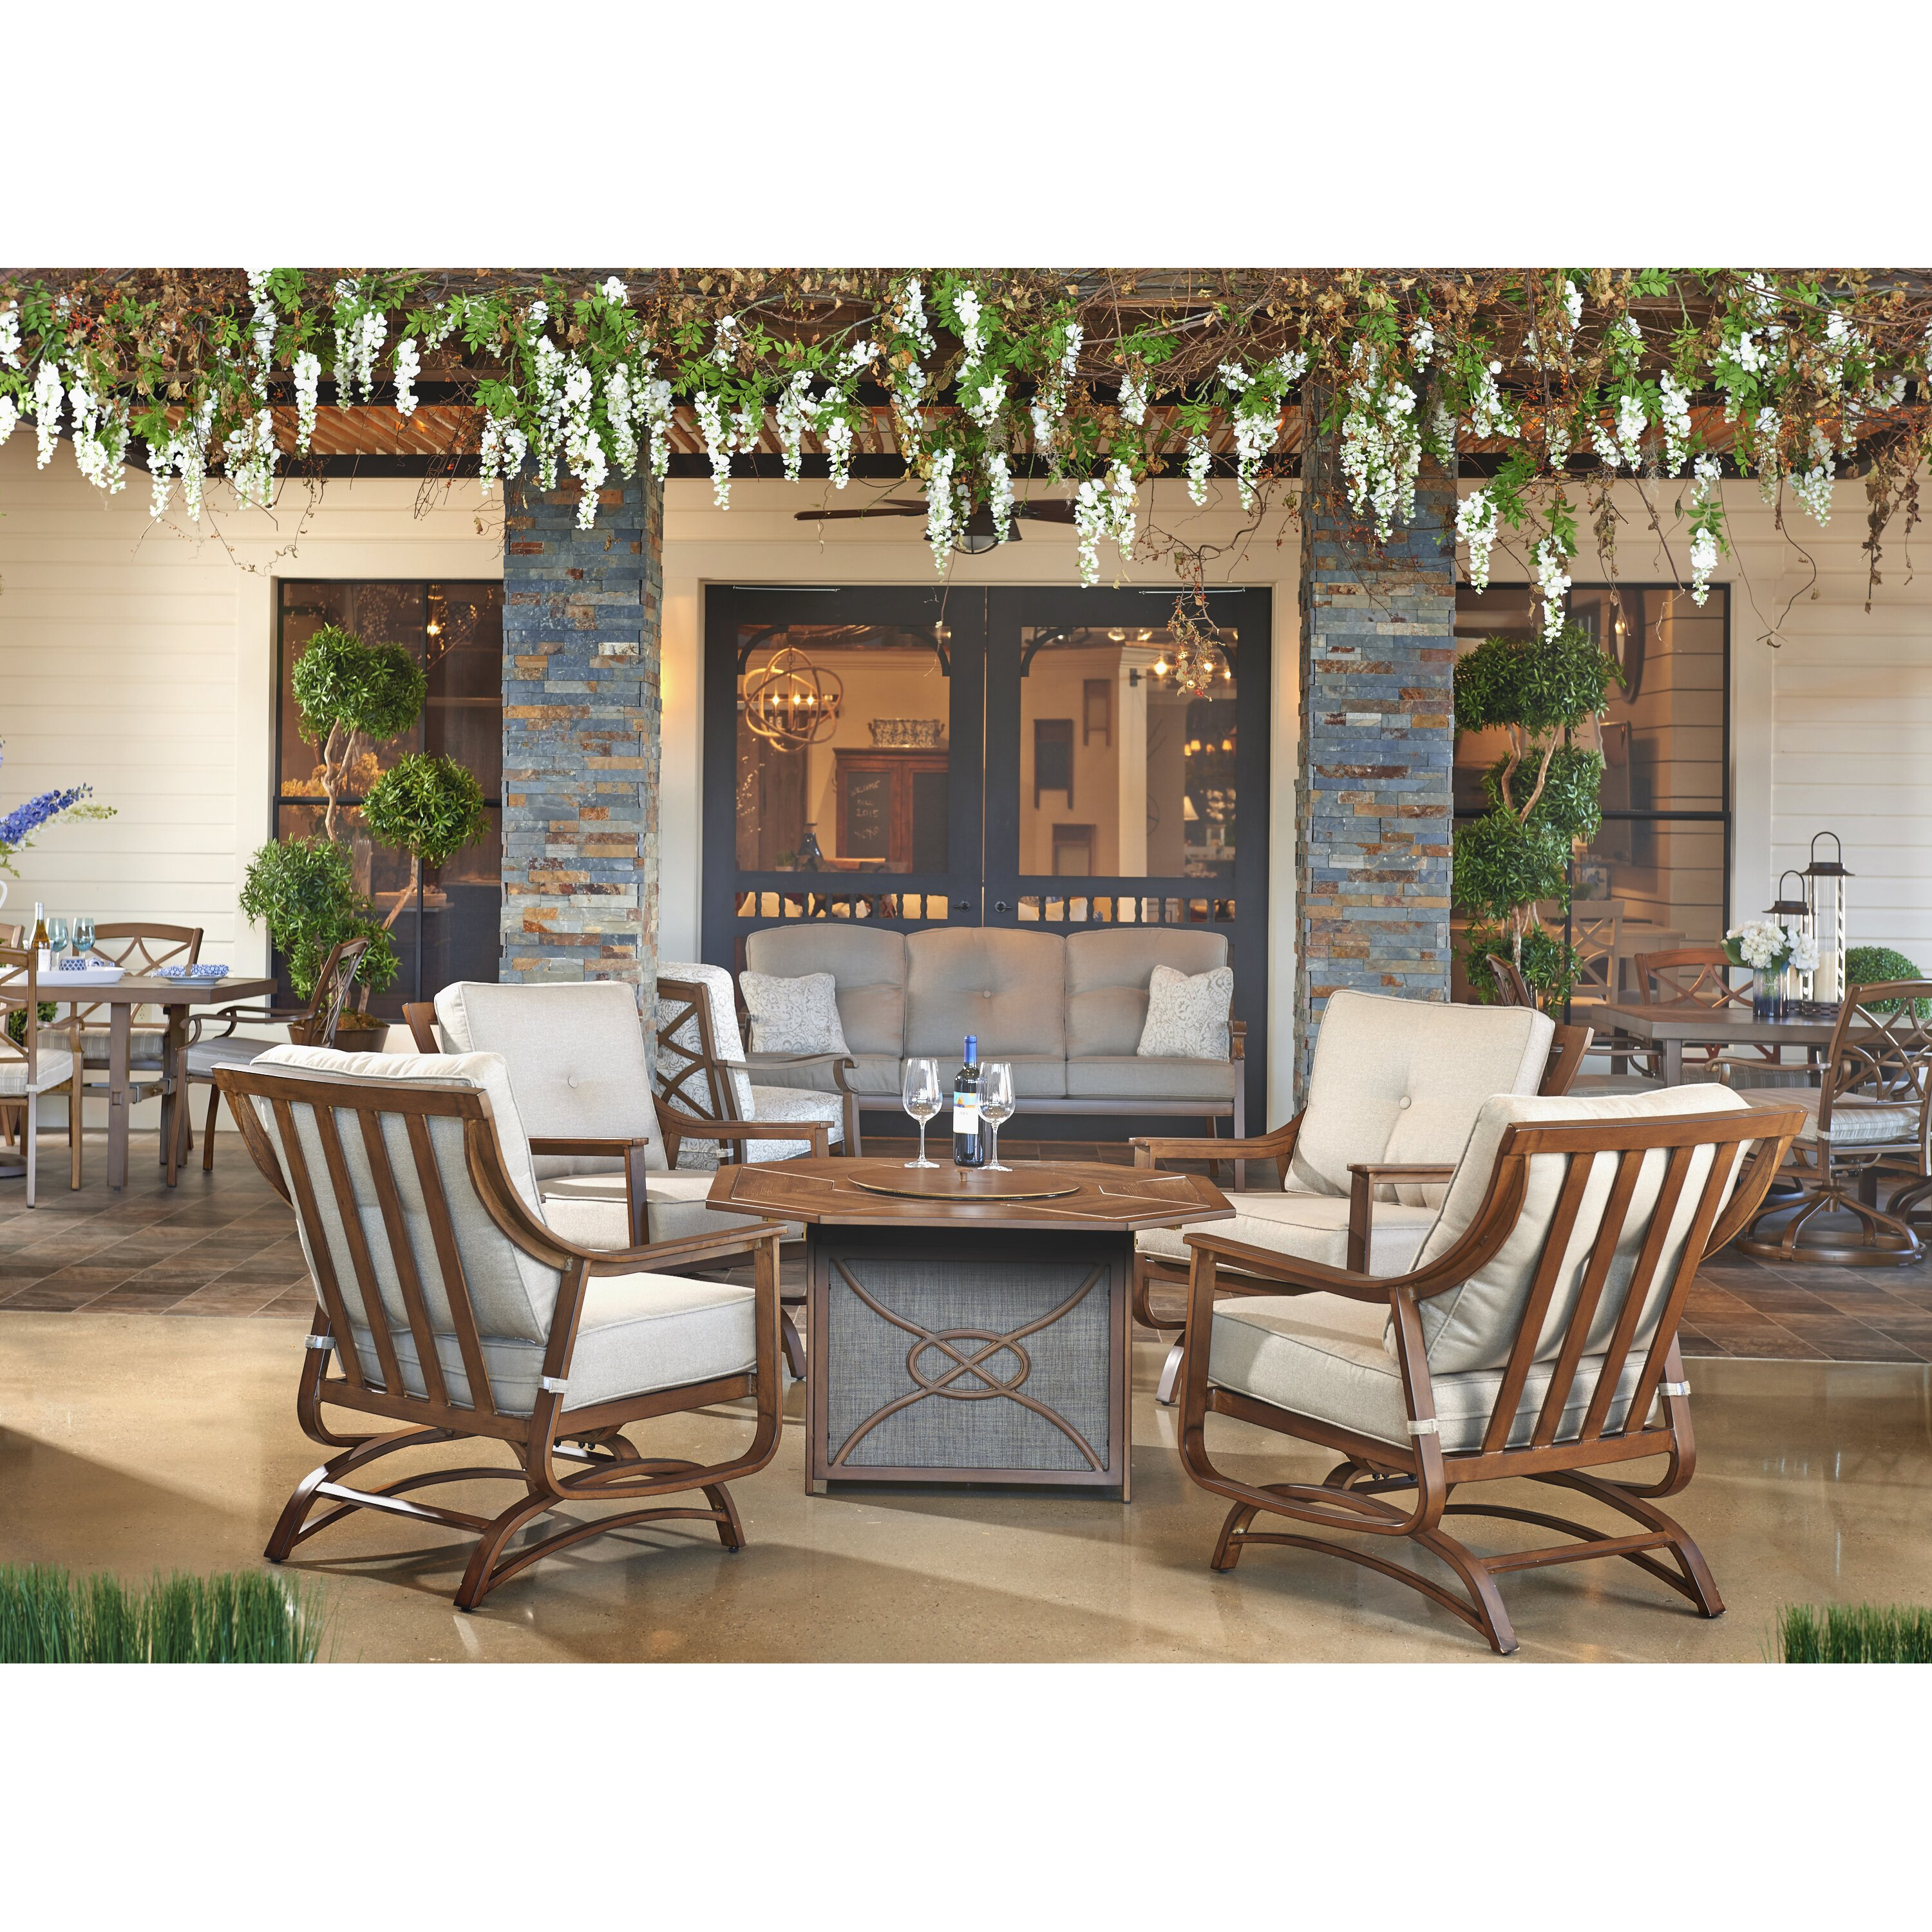 Trisha Yearwood Home Collection Outdoor Fire Pit 5 Piece Deep Group Living Room Furniture